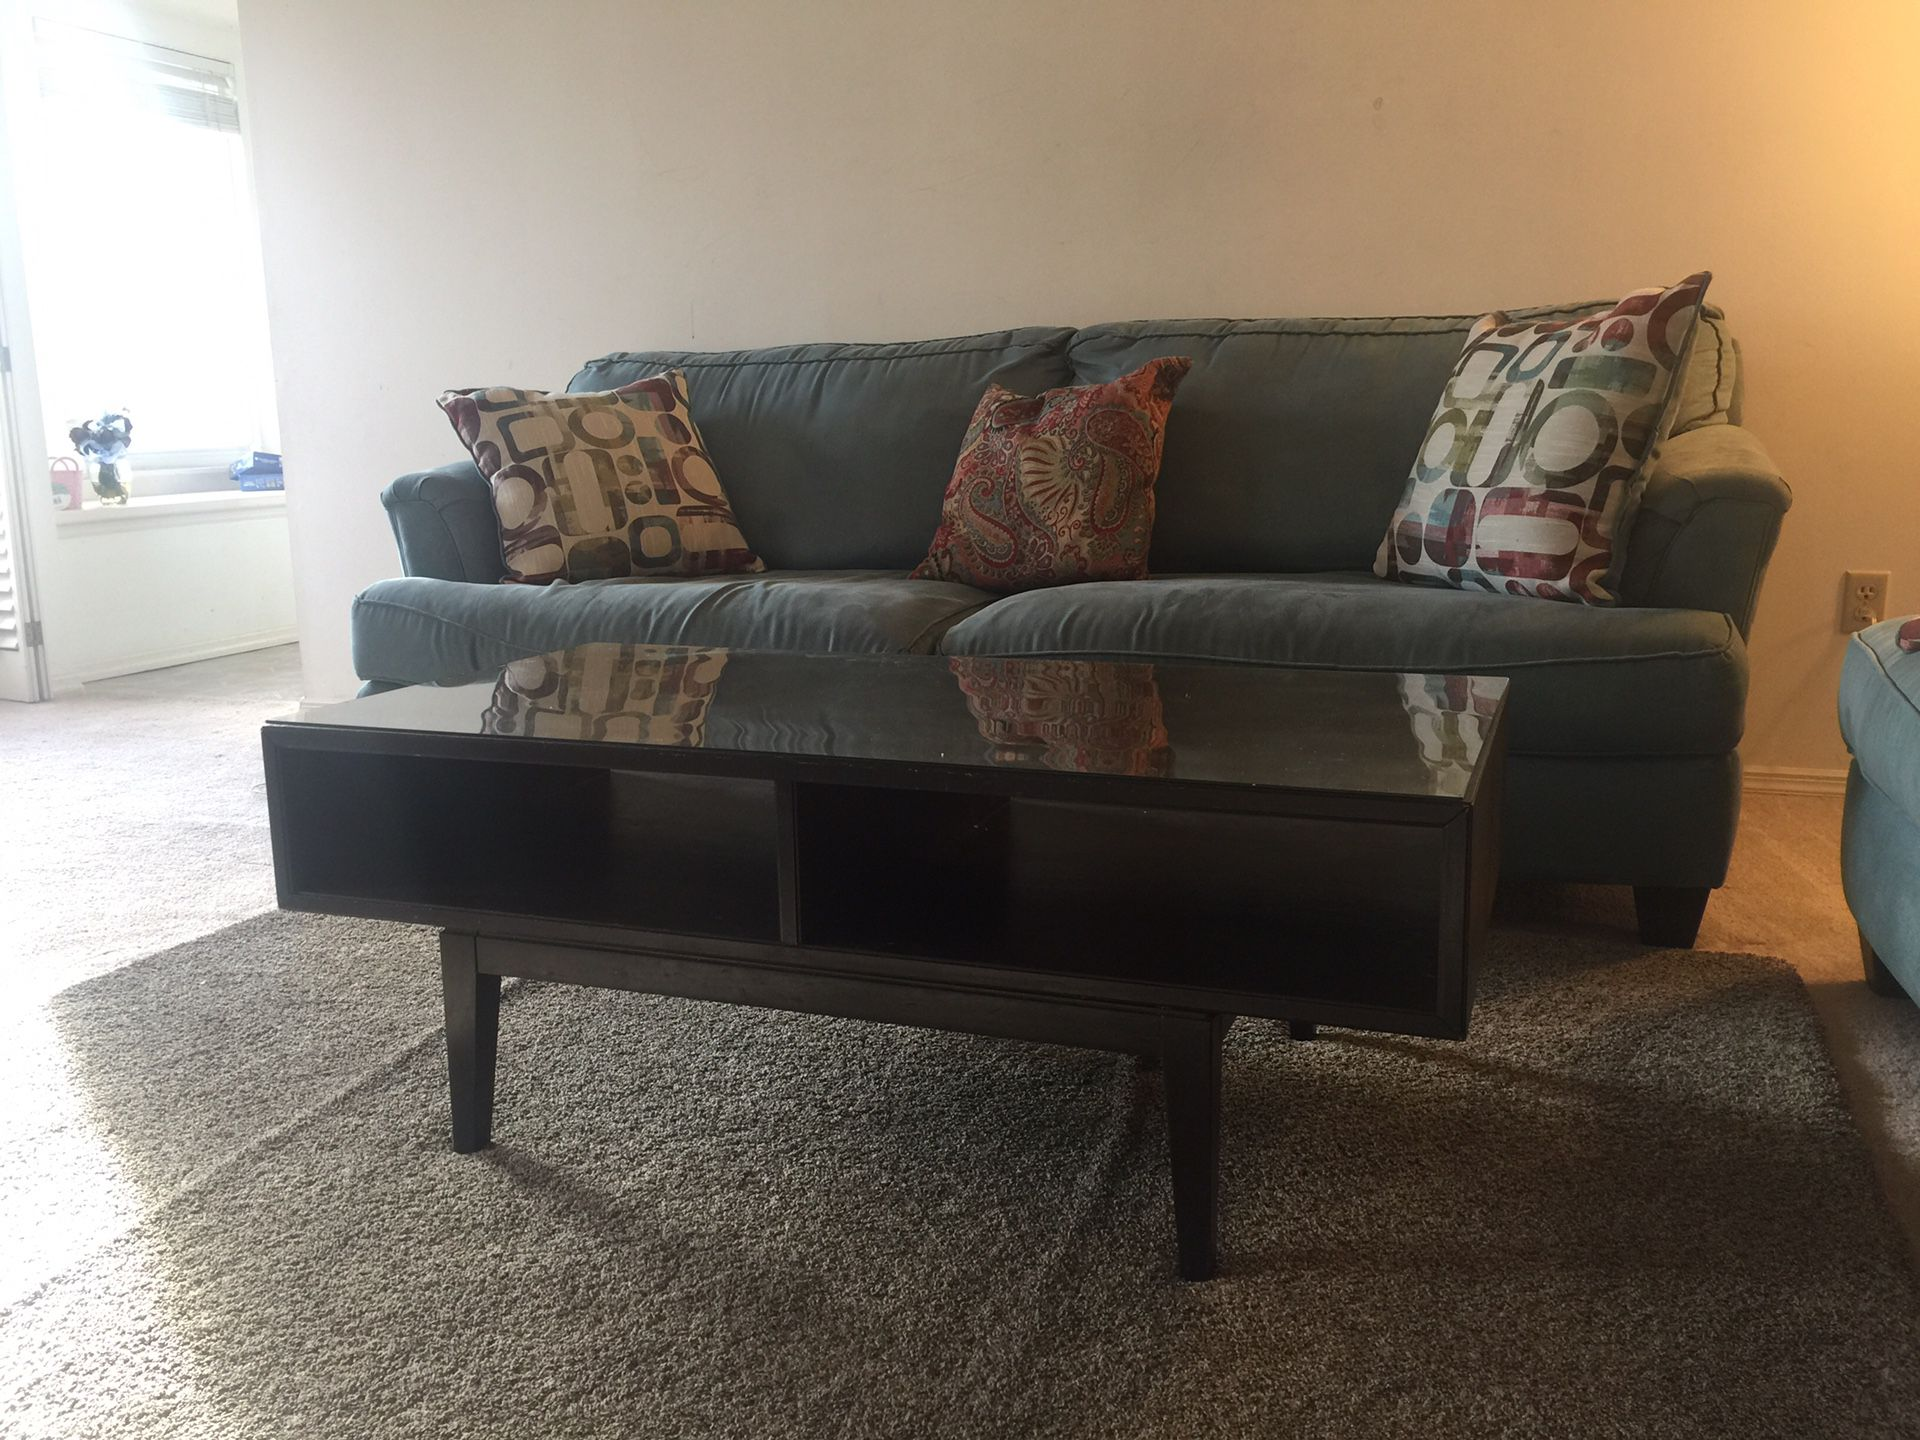 Two sofa, a coffee table, and blue rug.